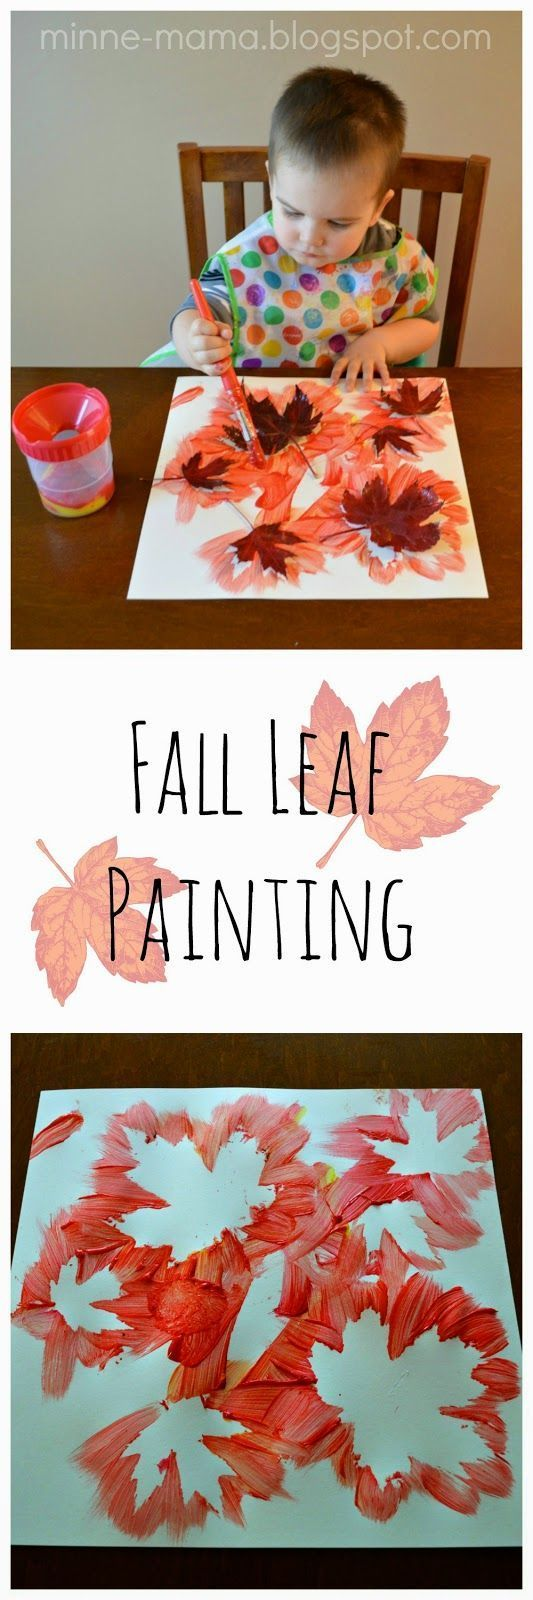 Minne-Mama: Fall Leaf Painting